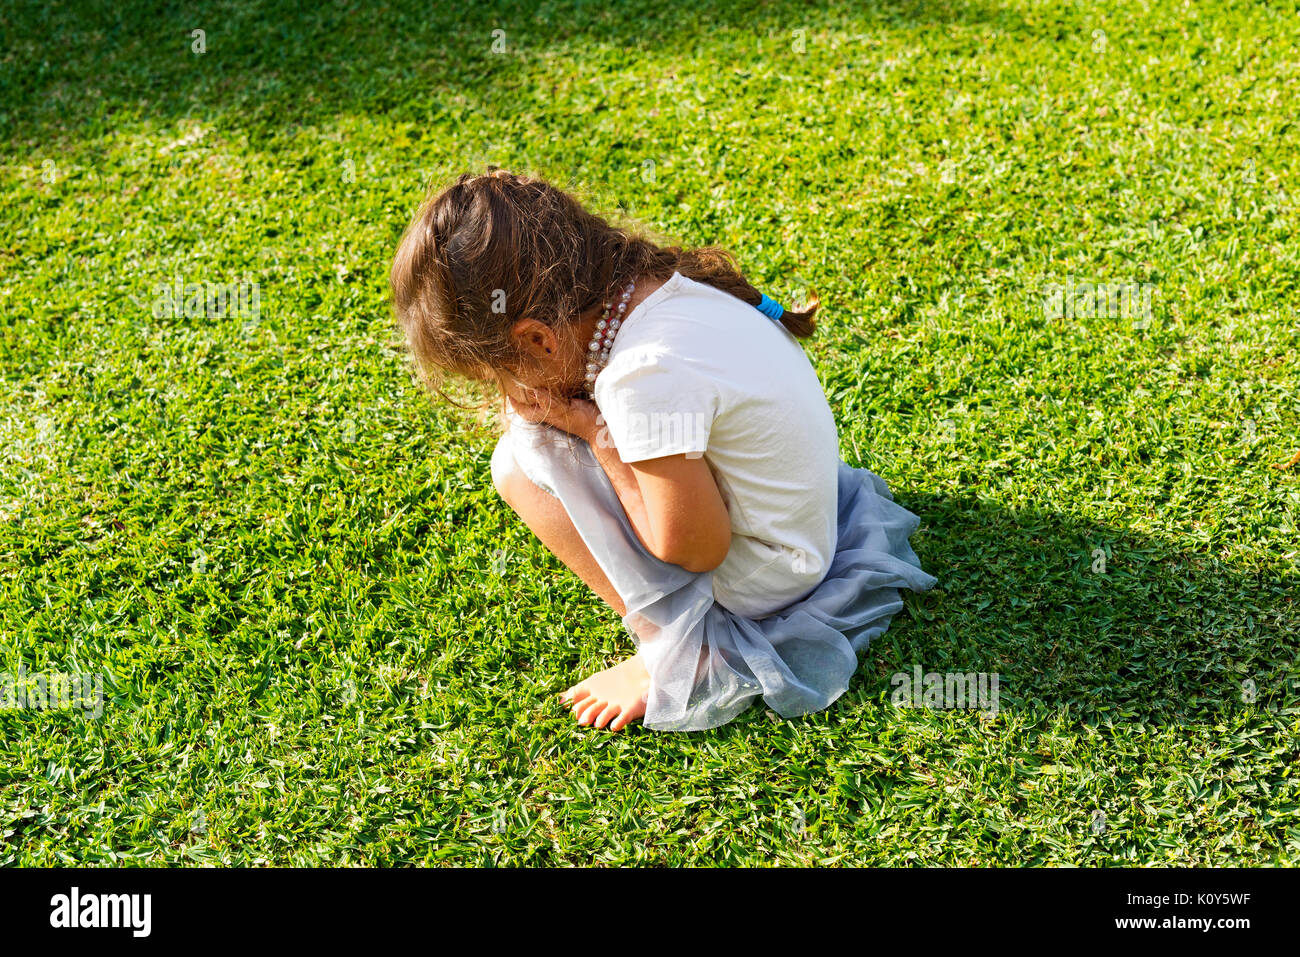 A young girl having a tantrum and crying on the lawn Stock Photo